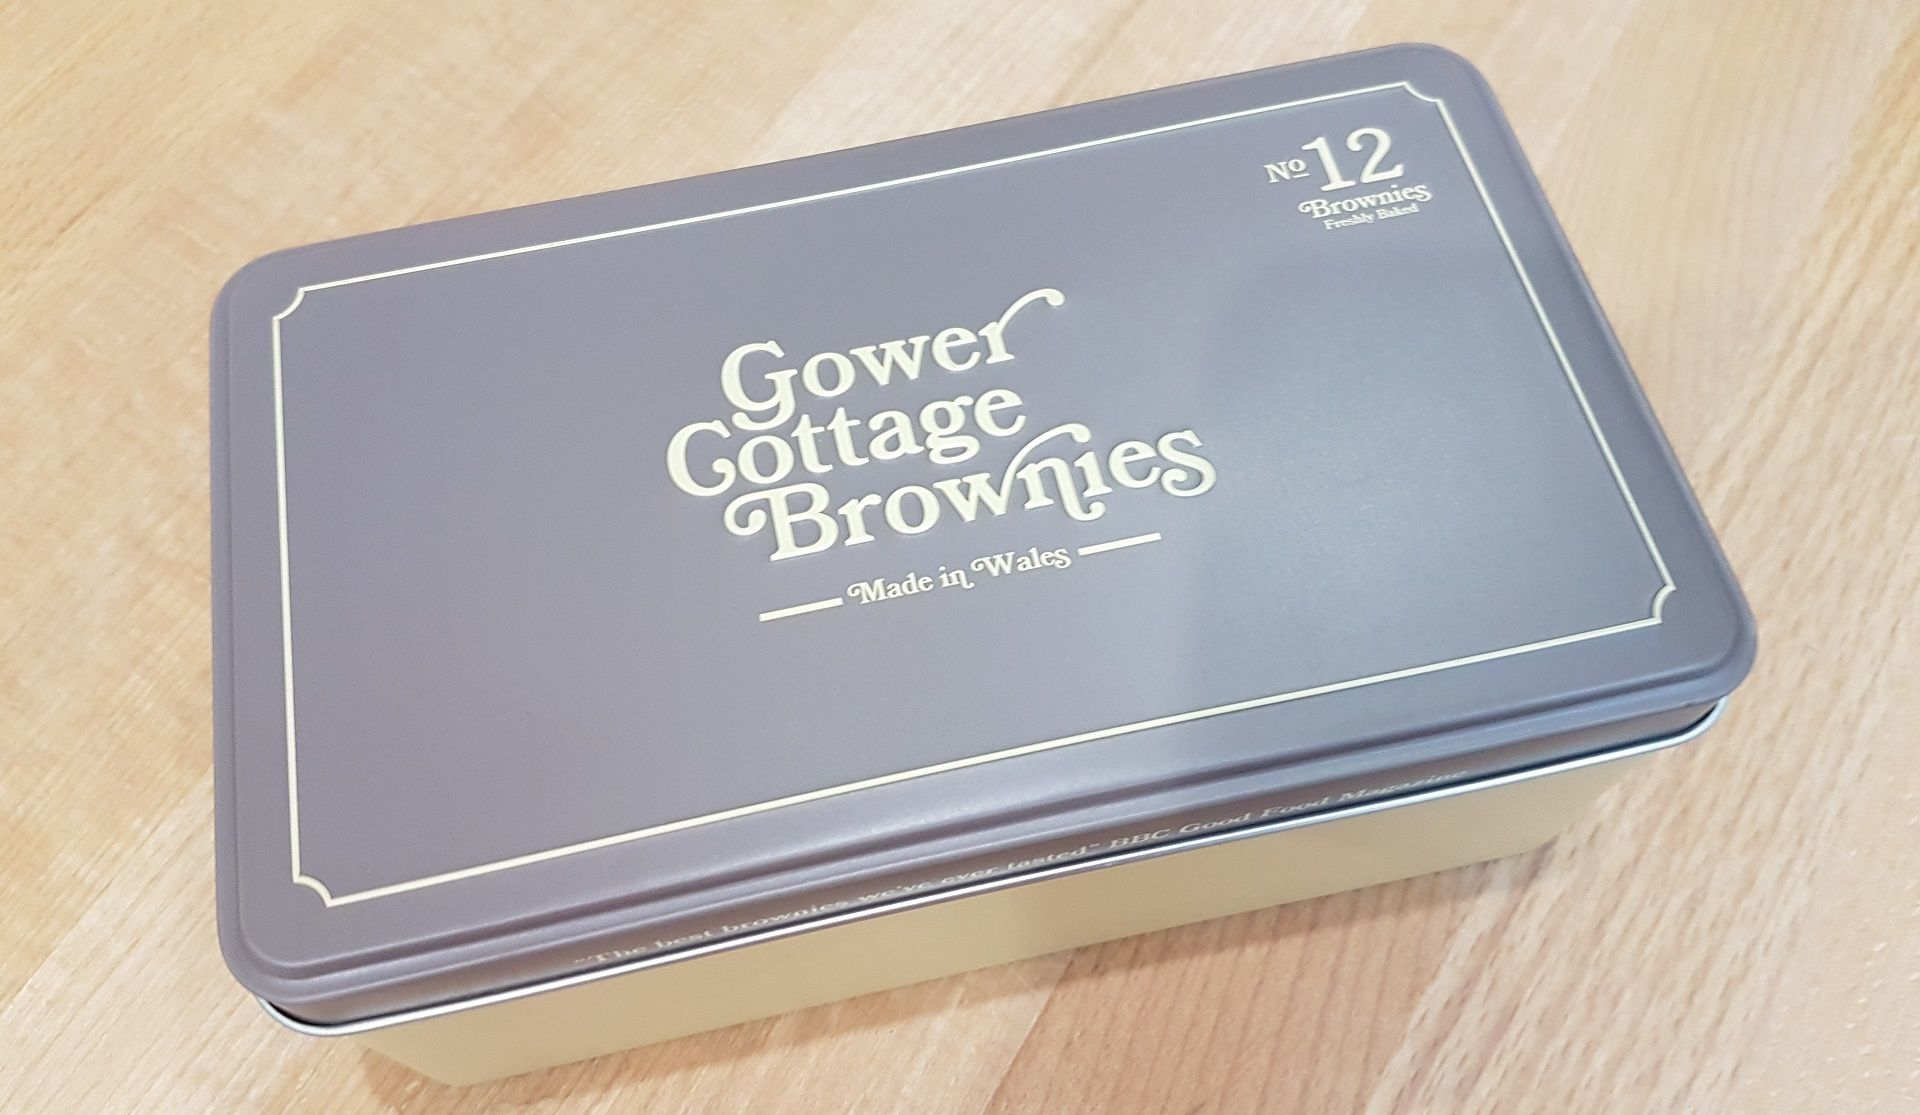 Original Gower Cottage Brownies in a presentation tin